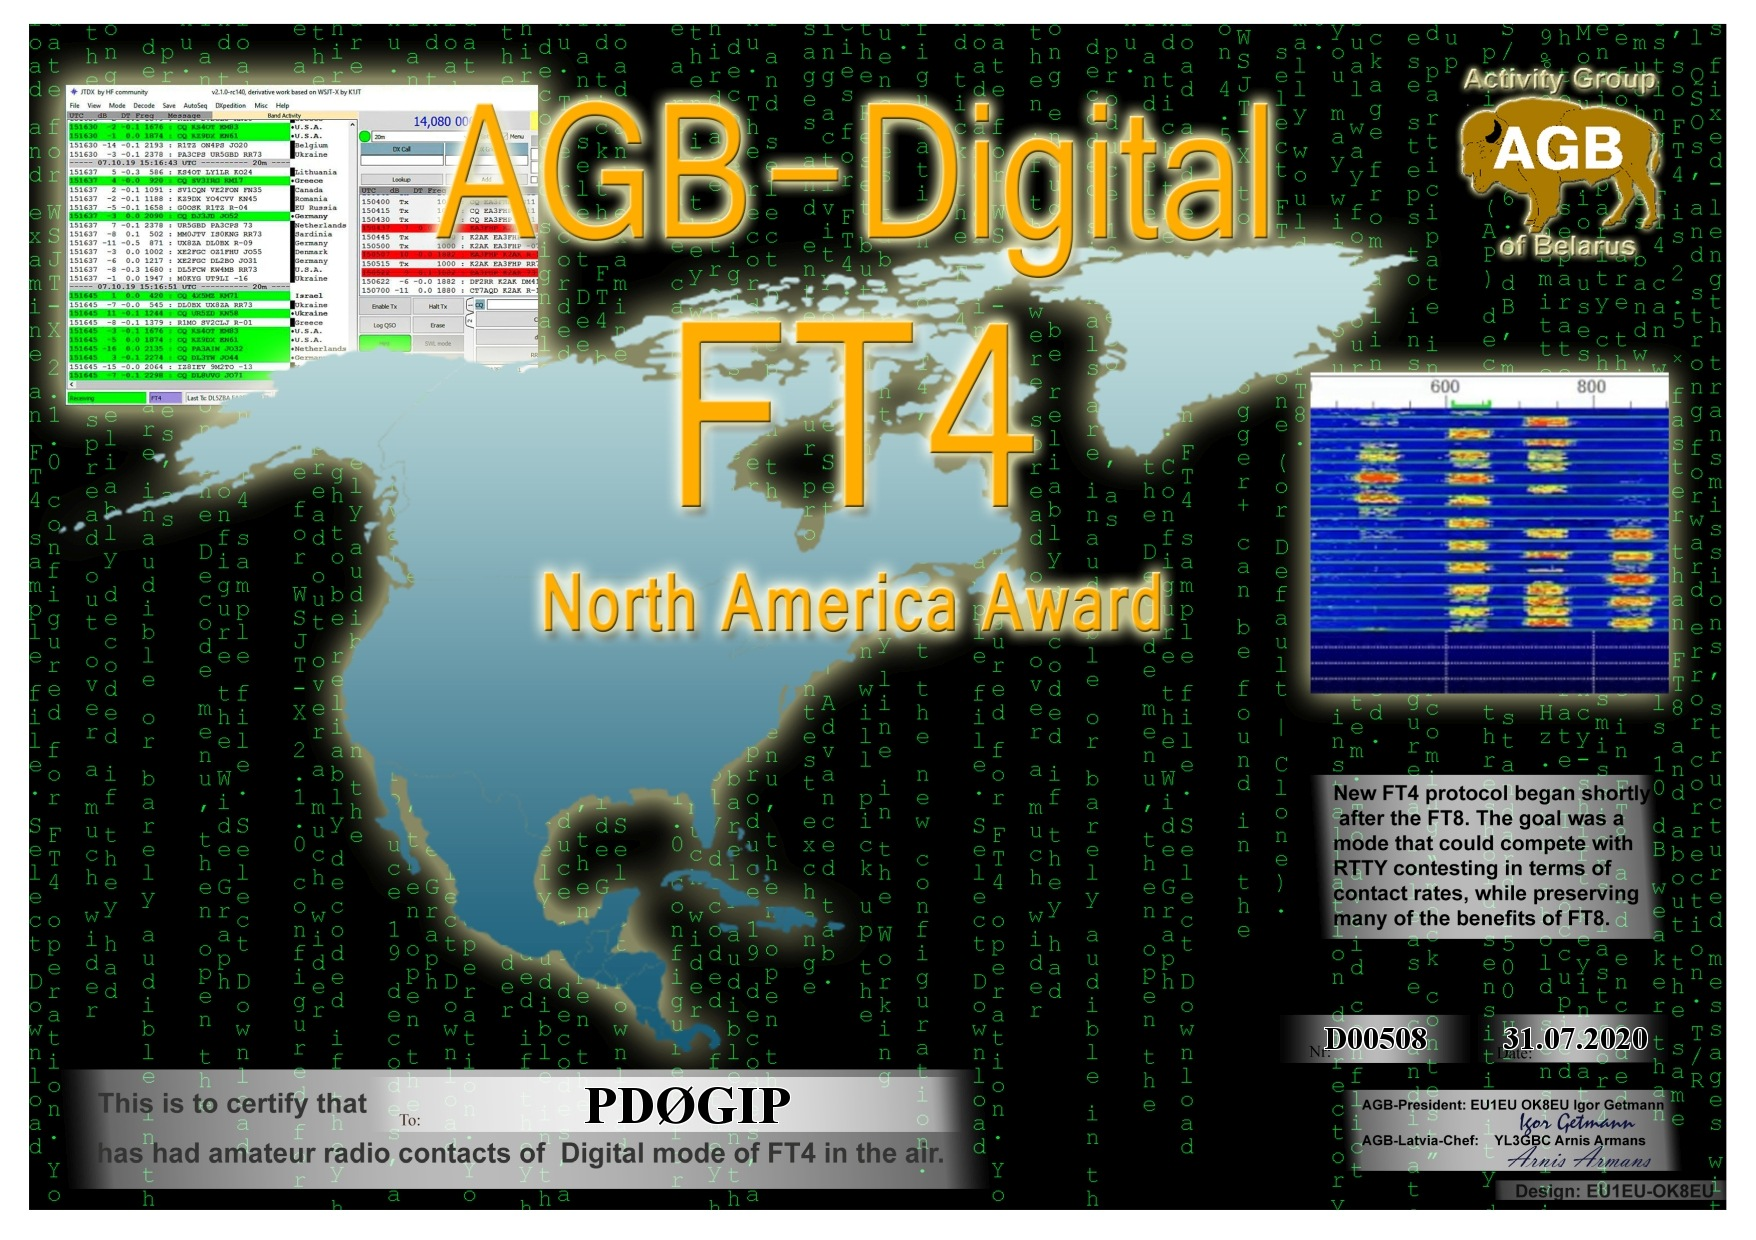 PD0GIP FT4 NORTHAMERICA BASIC AGB